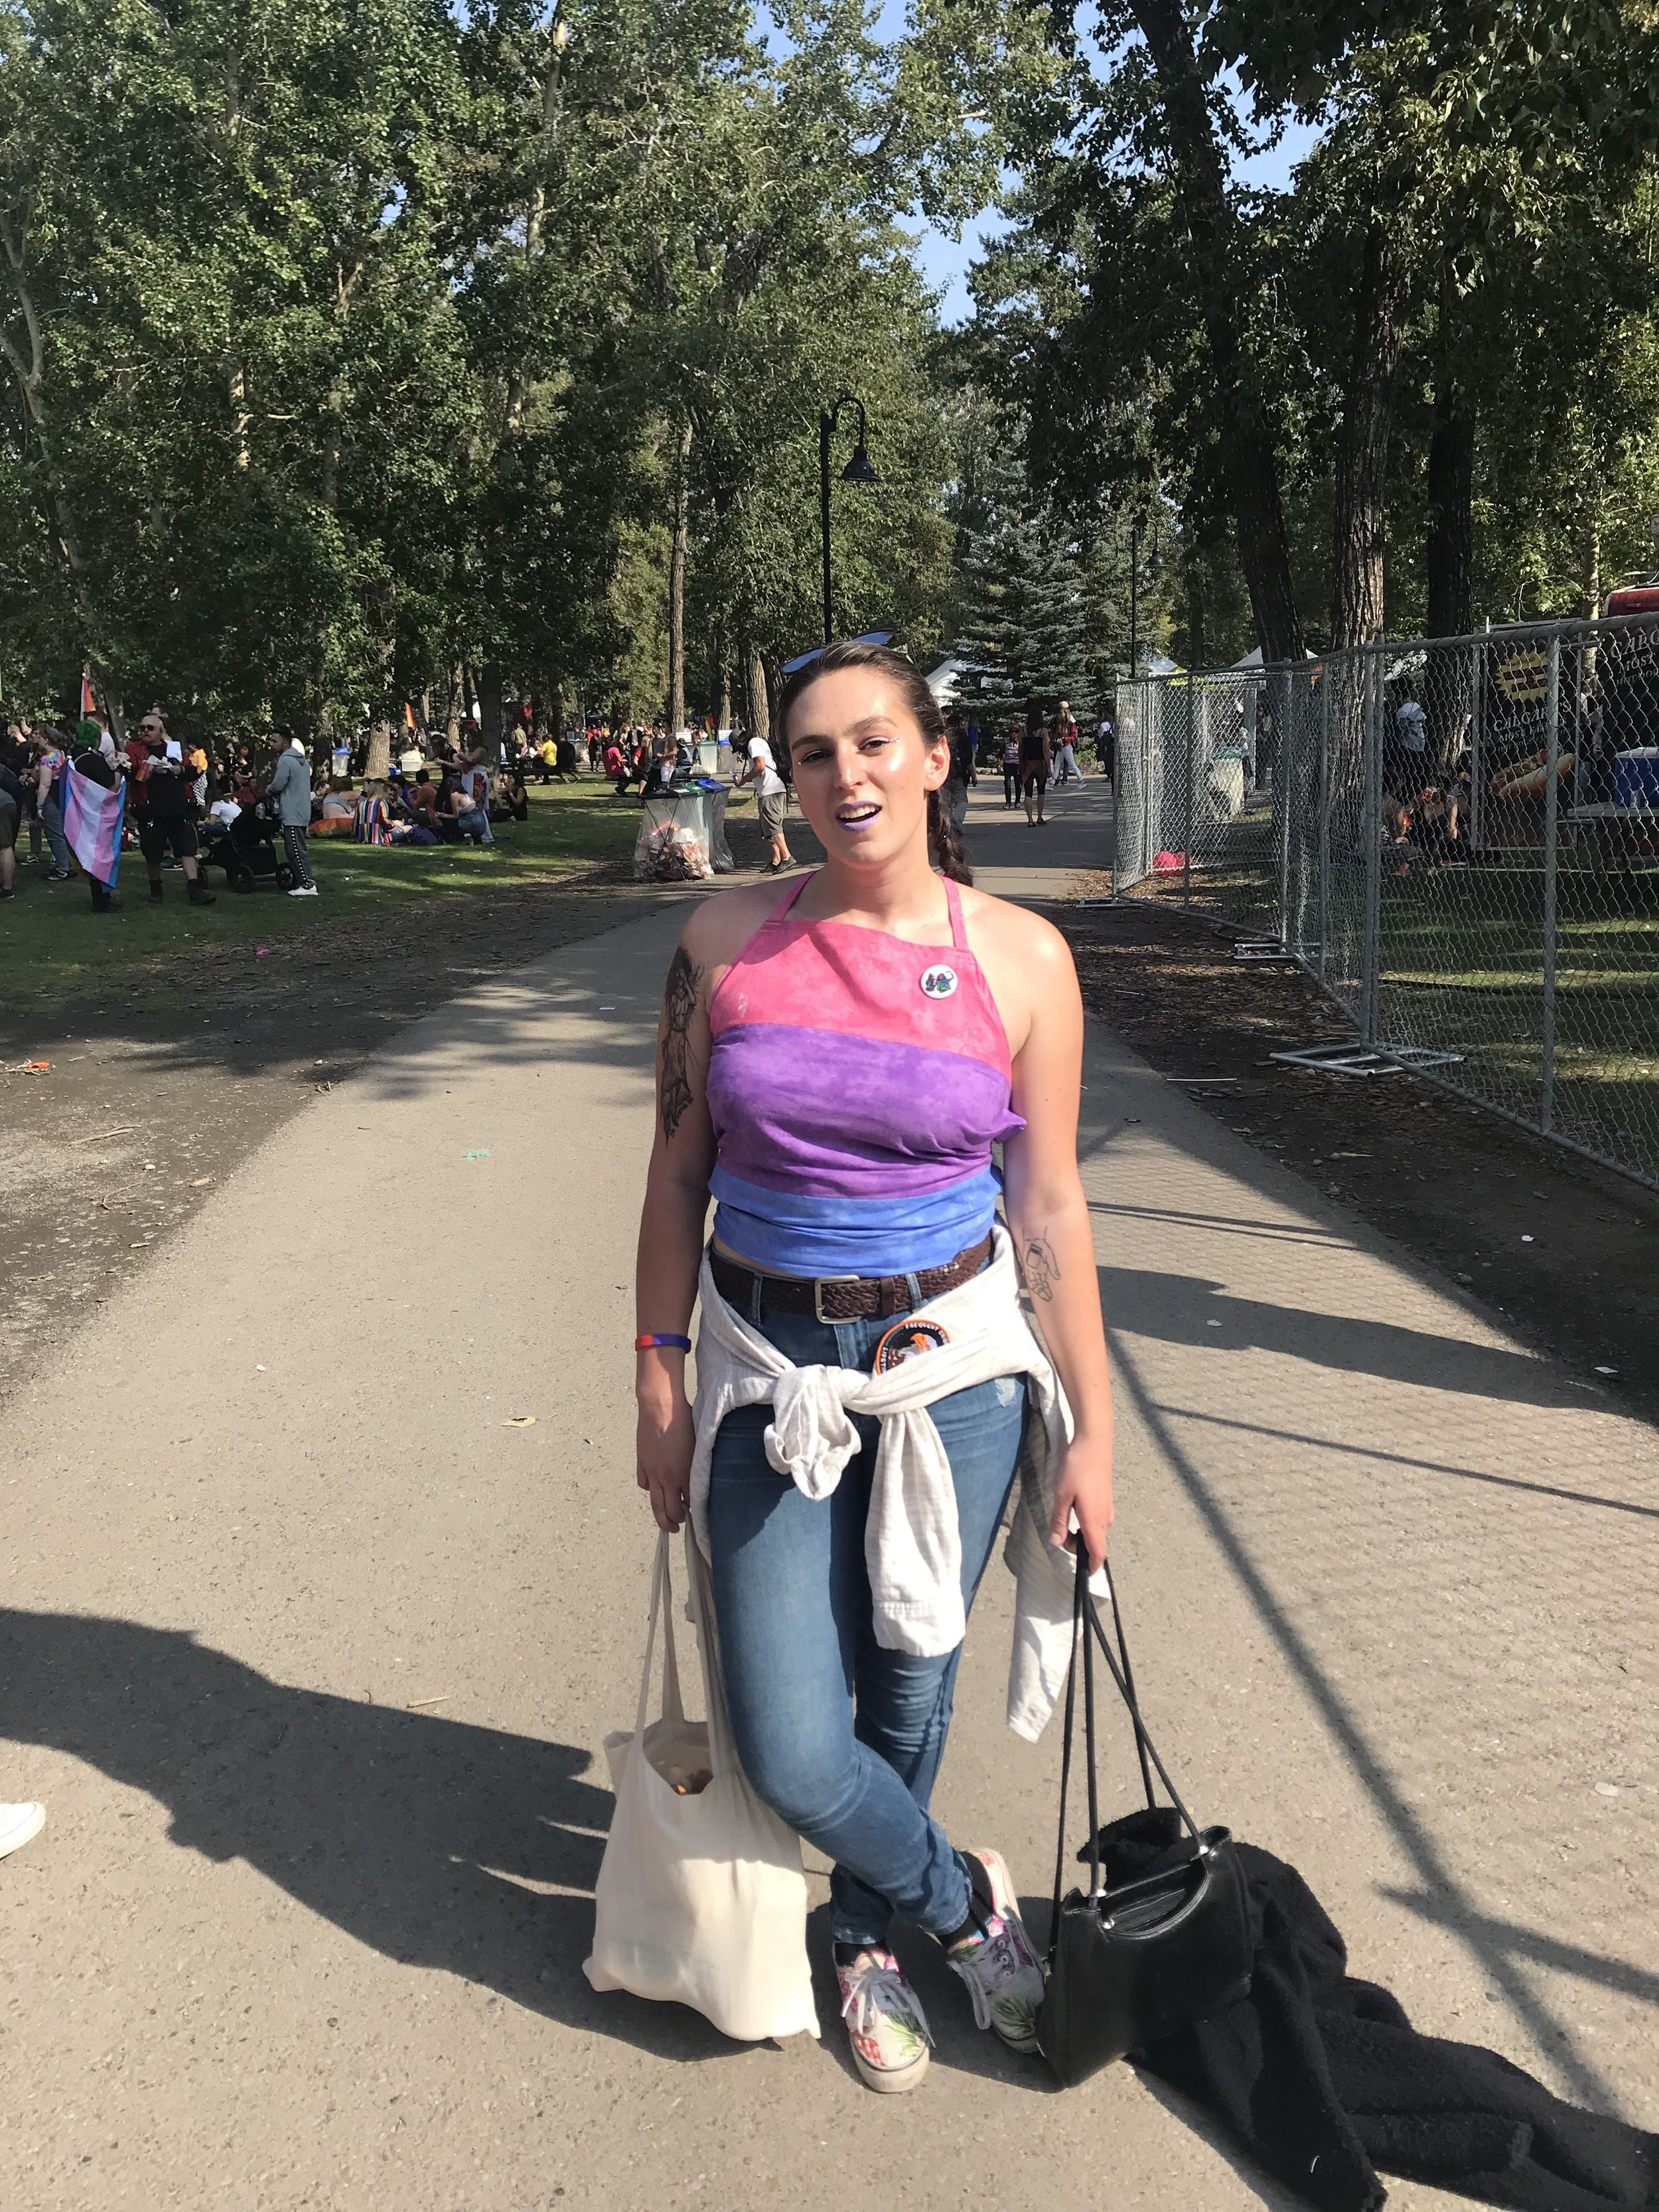 Calgary Pride 2018 wearing a self sewn and drafted Bisexual pride halter top.